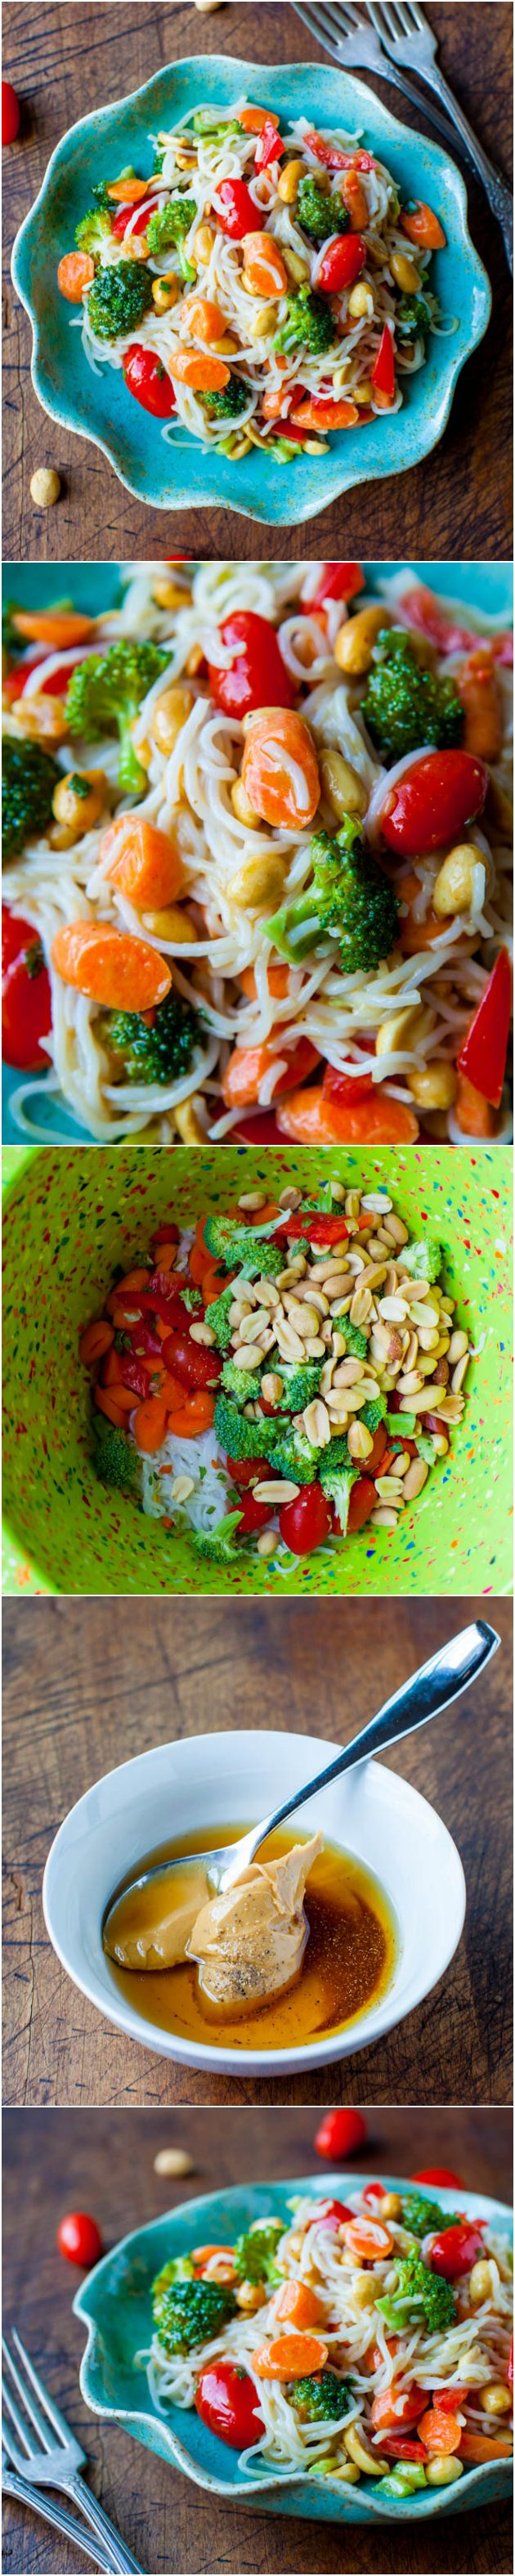 Peanut Noodles with Mixed Vegetables and Peanut Sauce (vegan, gluten-free, soy-free) - You won't need takeout because you can make your own healthy, easy peanut noodles with homemade peanut sauce in less than 15 minutes! Serve warm or cold. Easy recipe at averiecooks.com